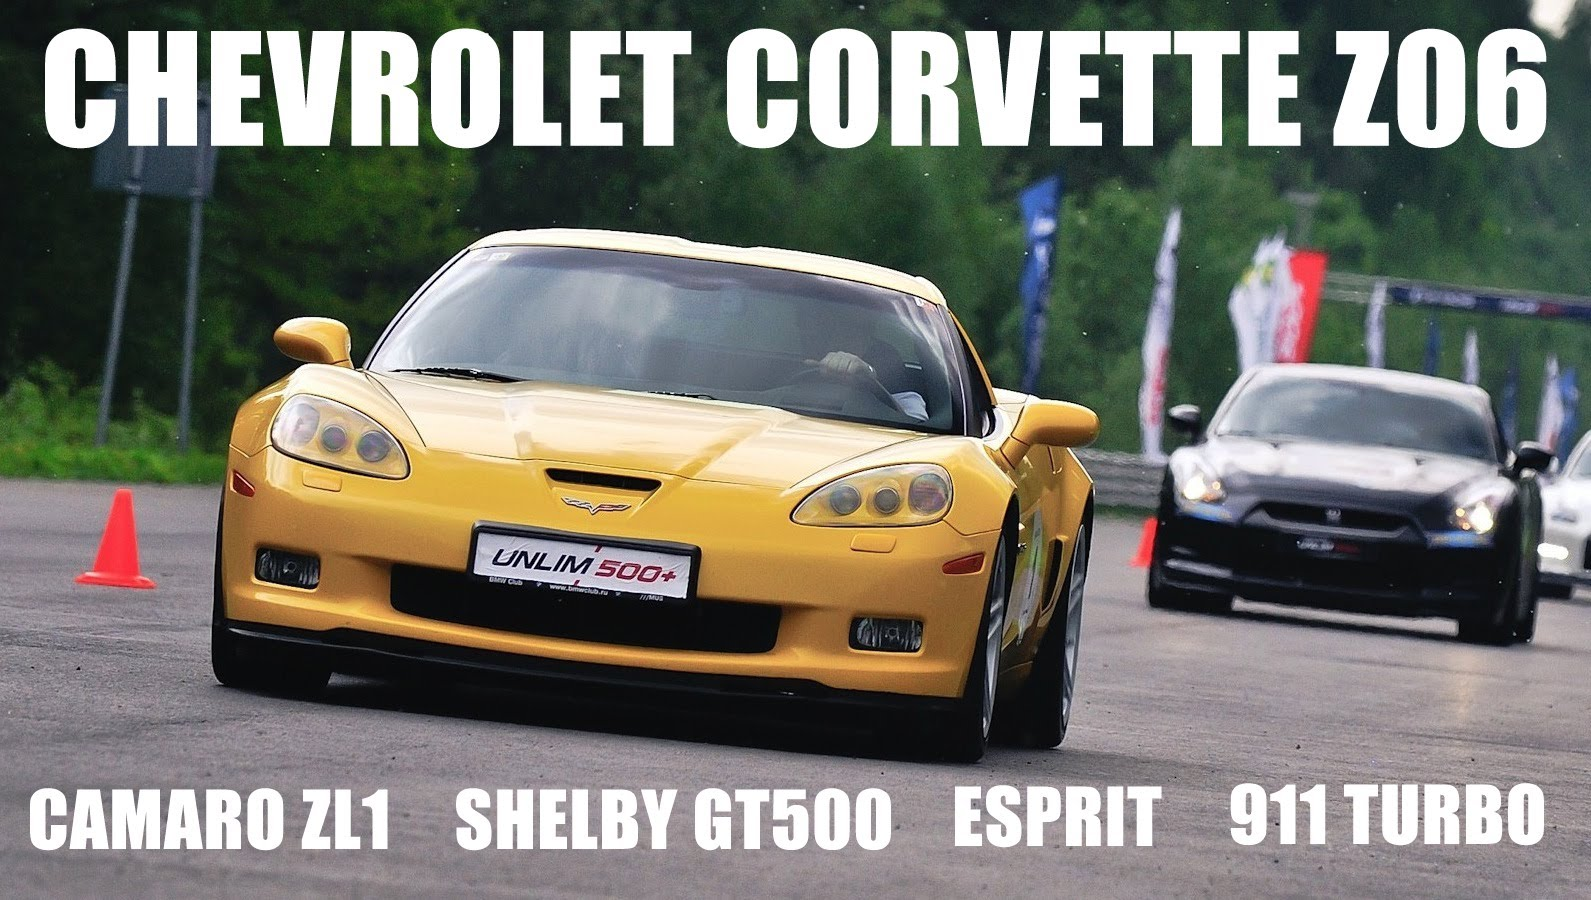 Corvette Z06 Vs Camaro Zl1 Vs Shelby Mustang Gt500 Vs